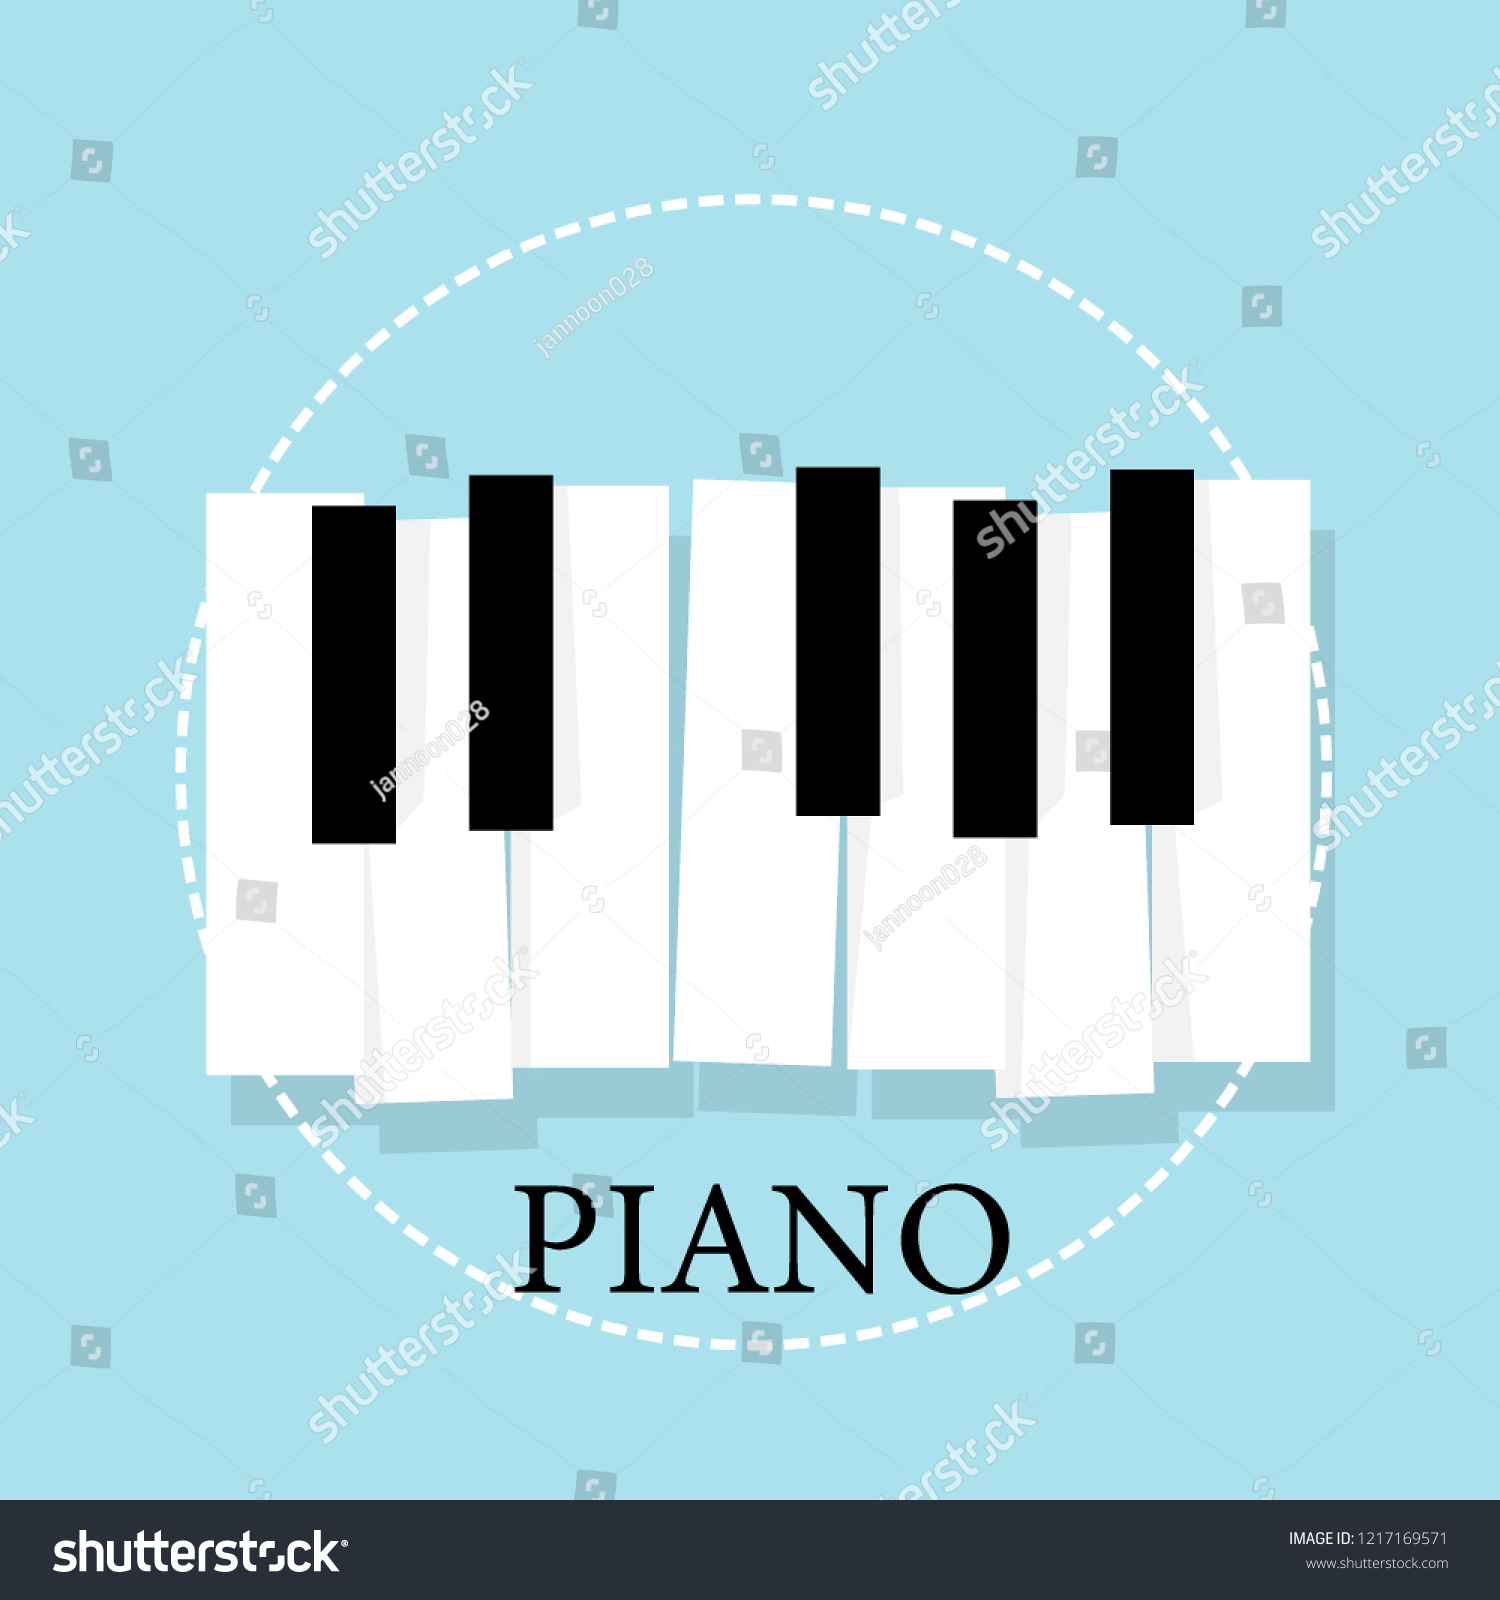 Music Piano Keyboard Poster Background Template